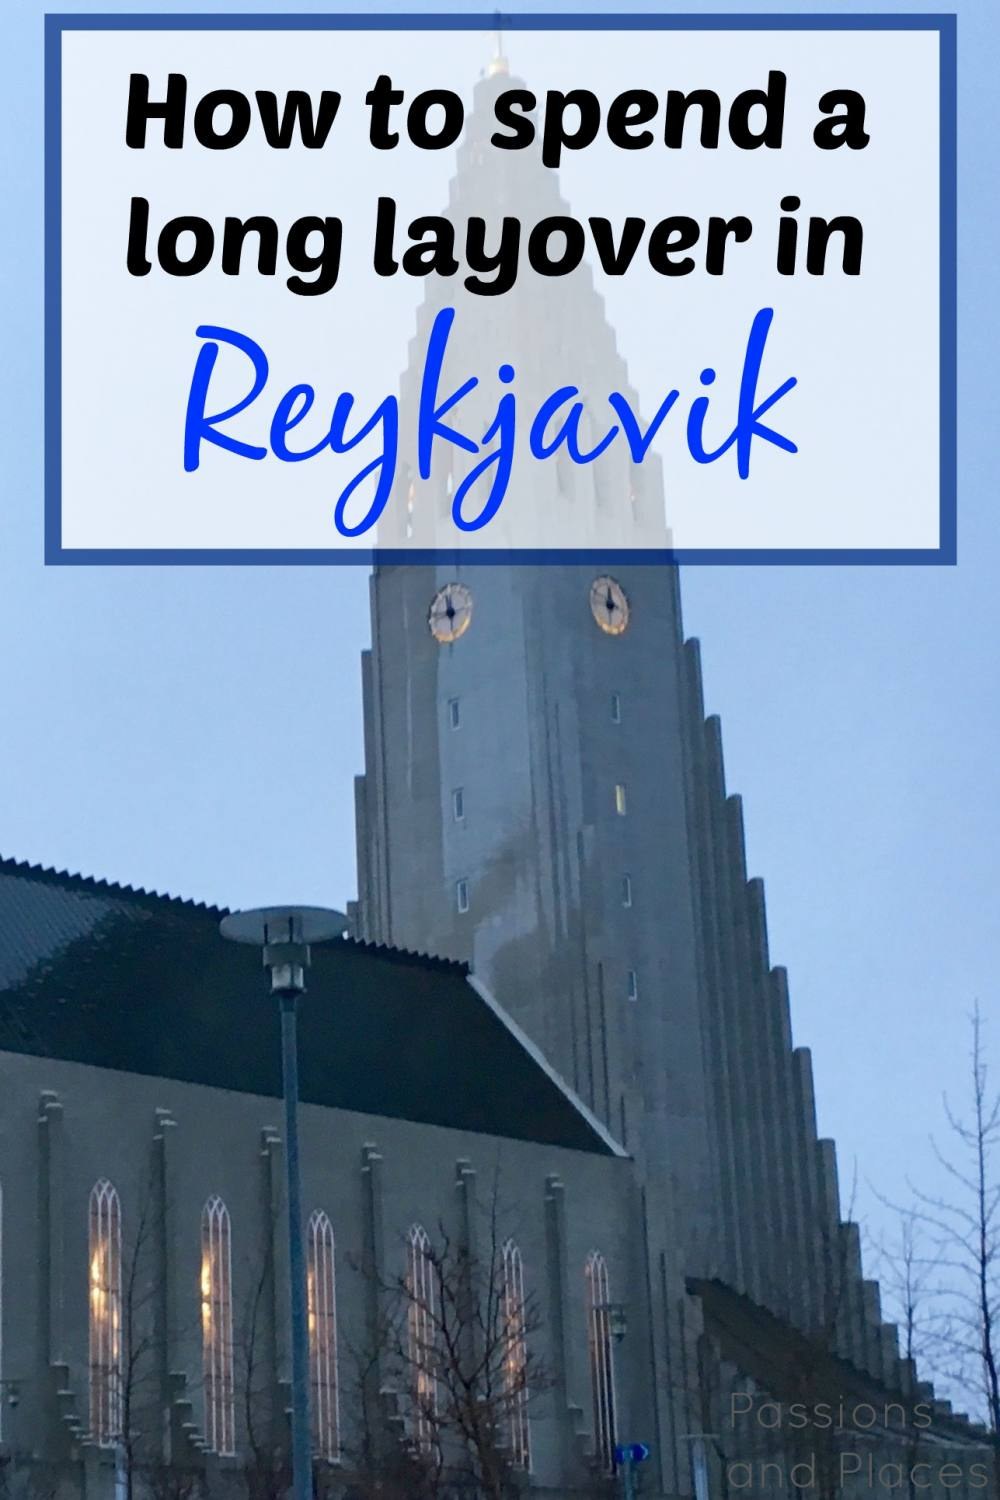 Have a long layover in Iceland? Follow this itinerary to explore Reykjavik in 24 hours - it's enough time to visit hot springs, the Icelandic Phallological Museum, Hallgrimskirkja Church, and more.